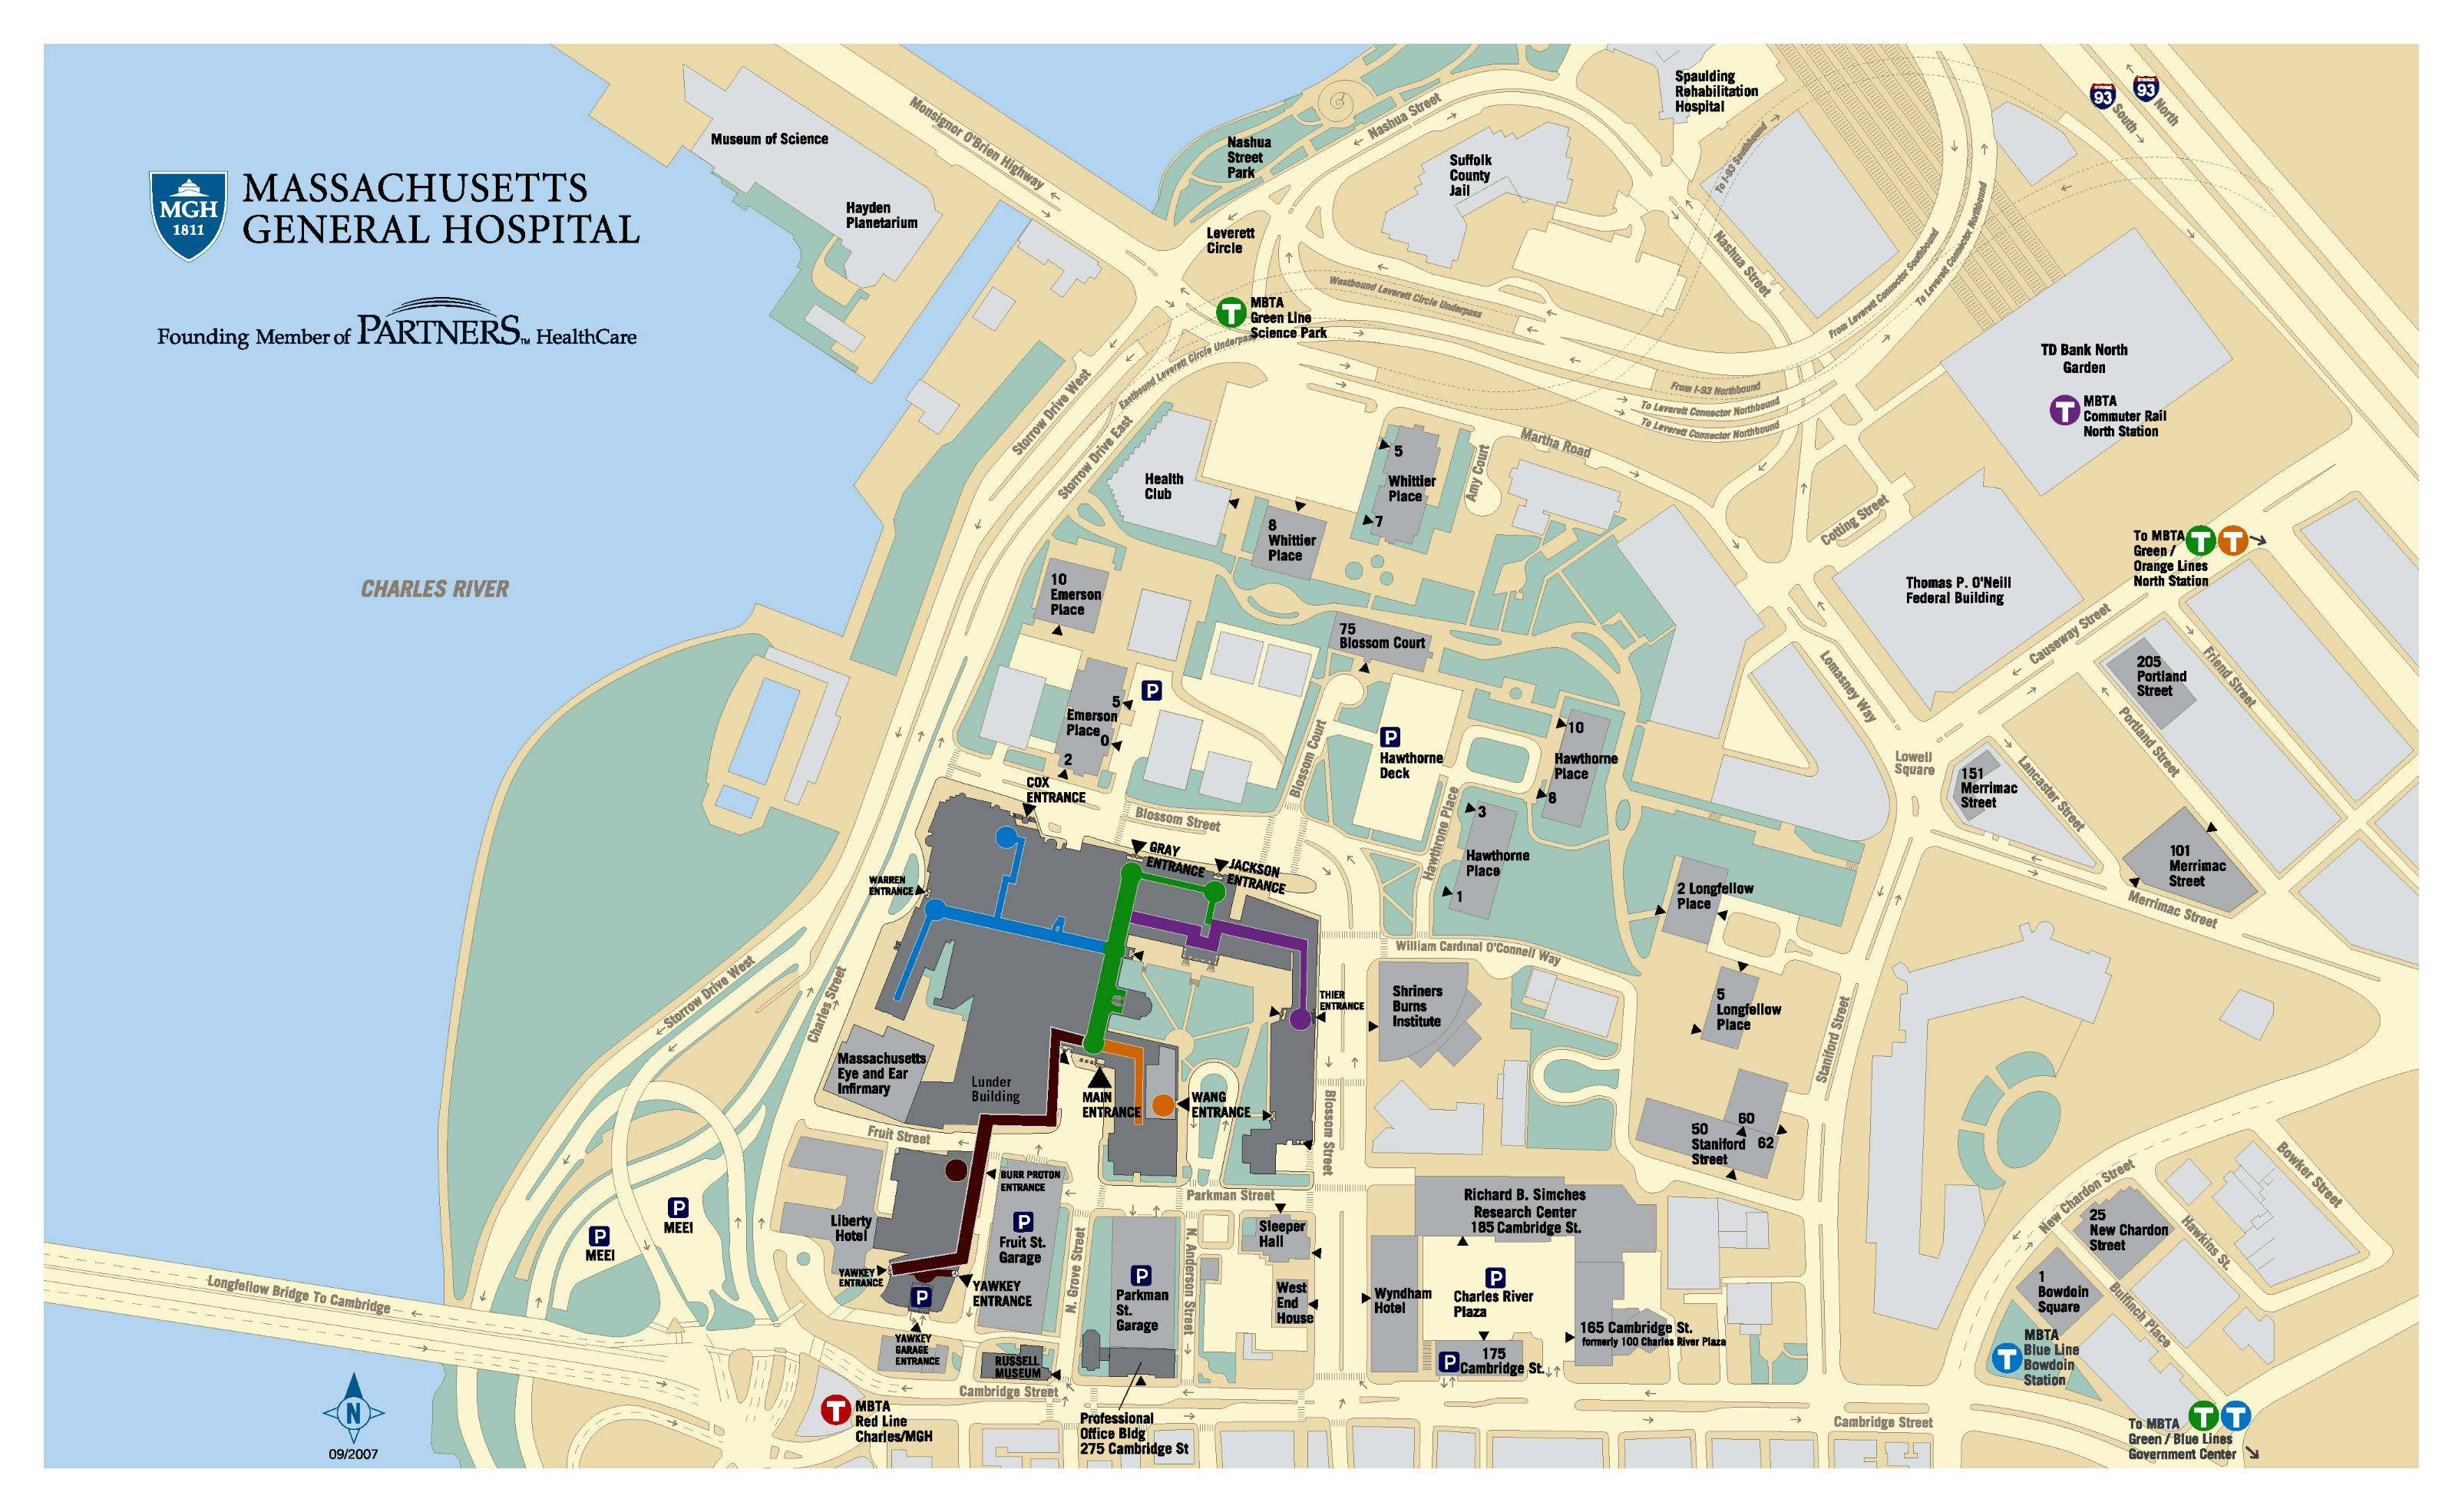 Mgh Campus Map Mass General Campus Map | Map Of Us Western States